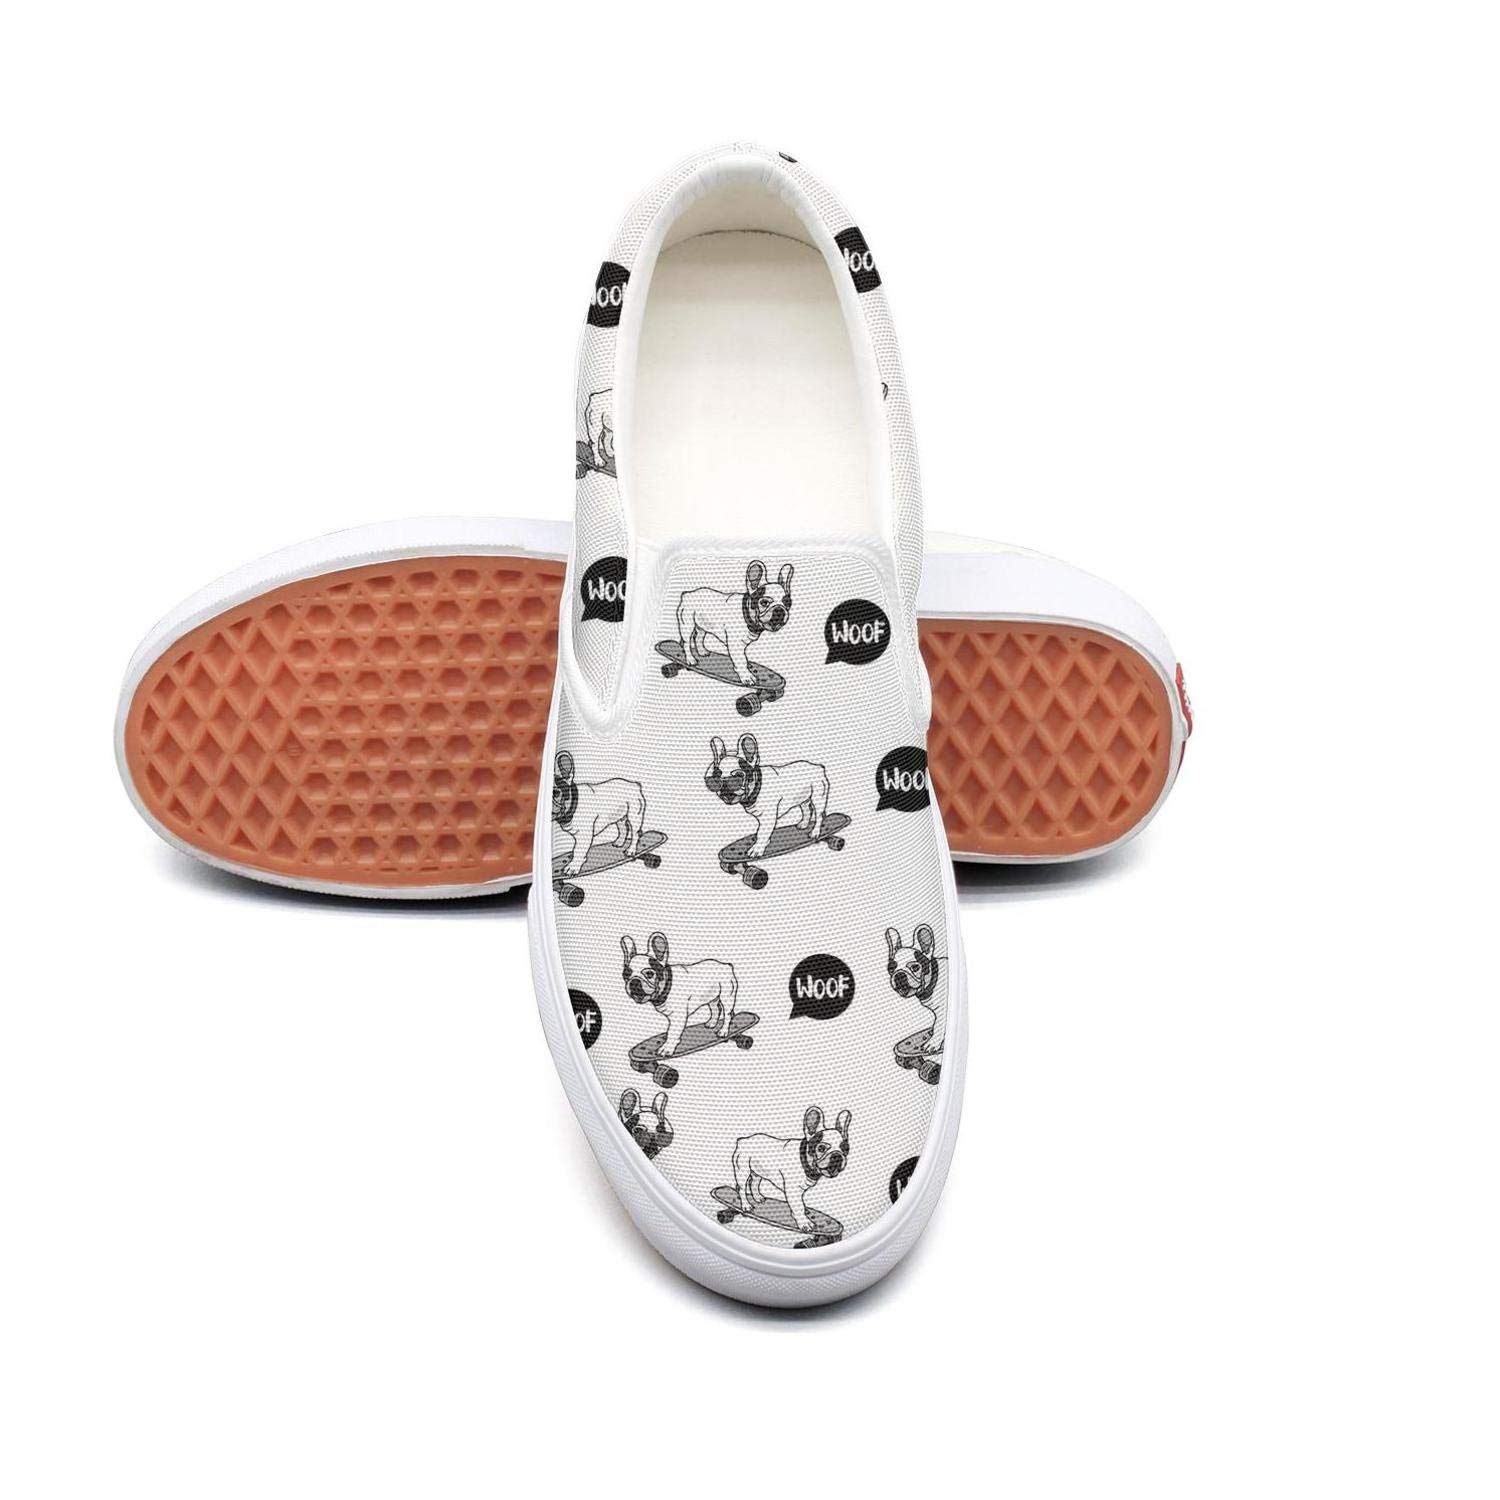 PDAQS Women French bulldog sunglasses on skateboard white loafers slip-on trainers low top